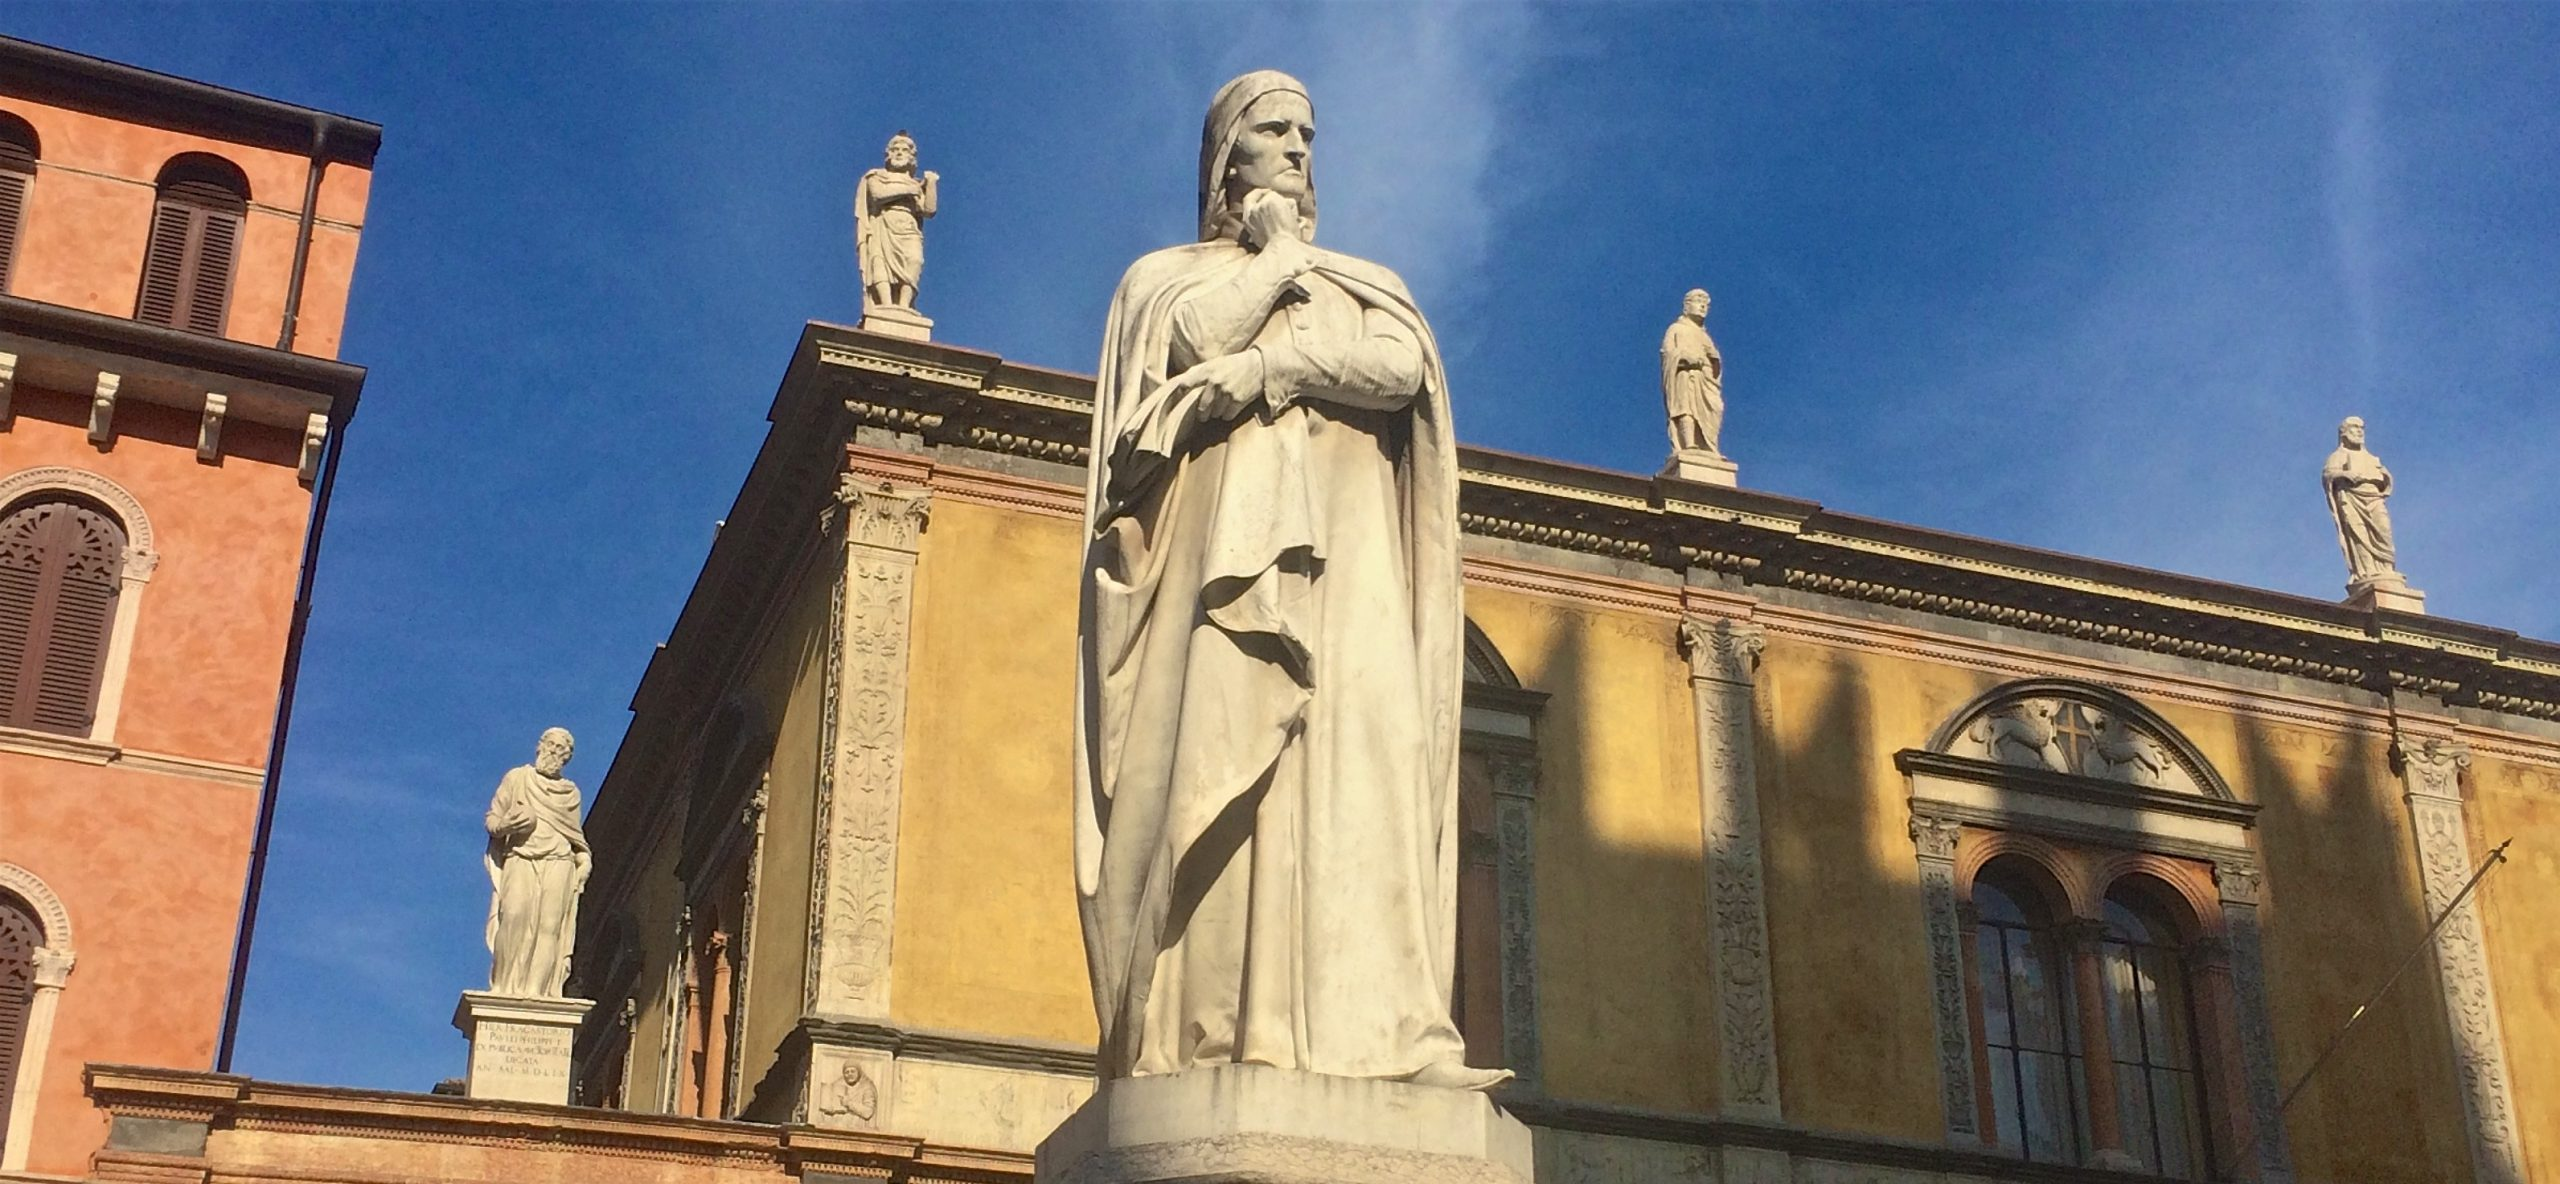 Why, if you go to Verona, will you find Dante looking at you so badly?